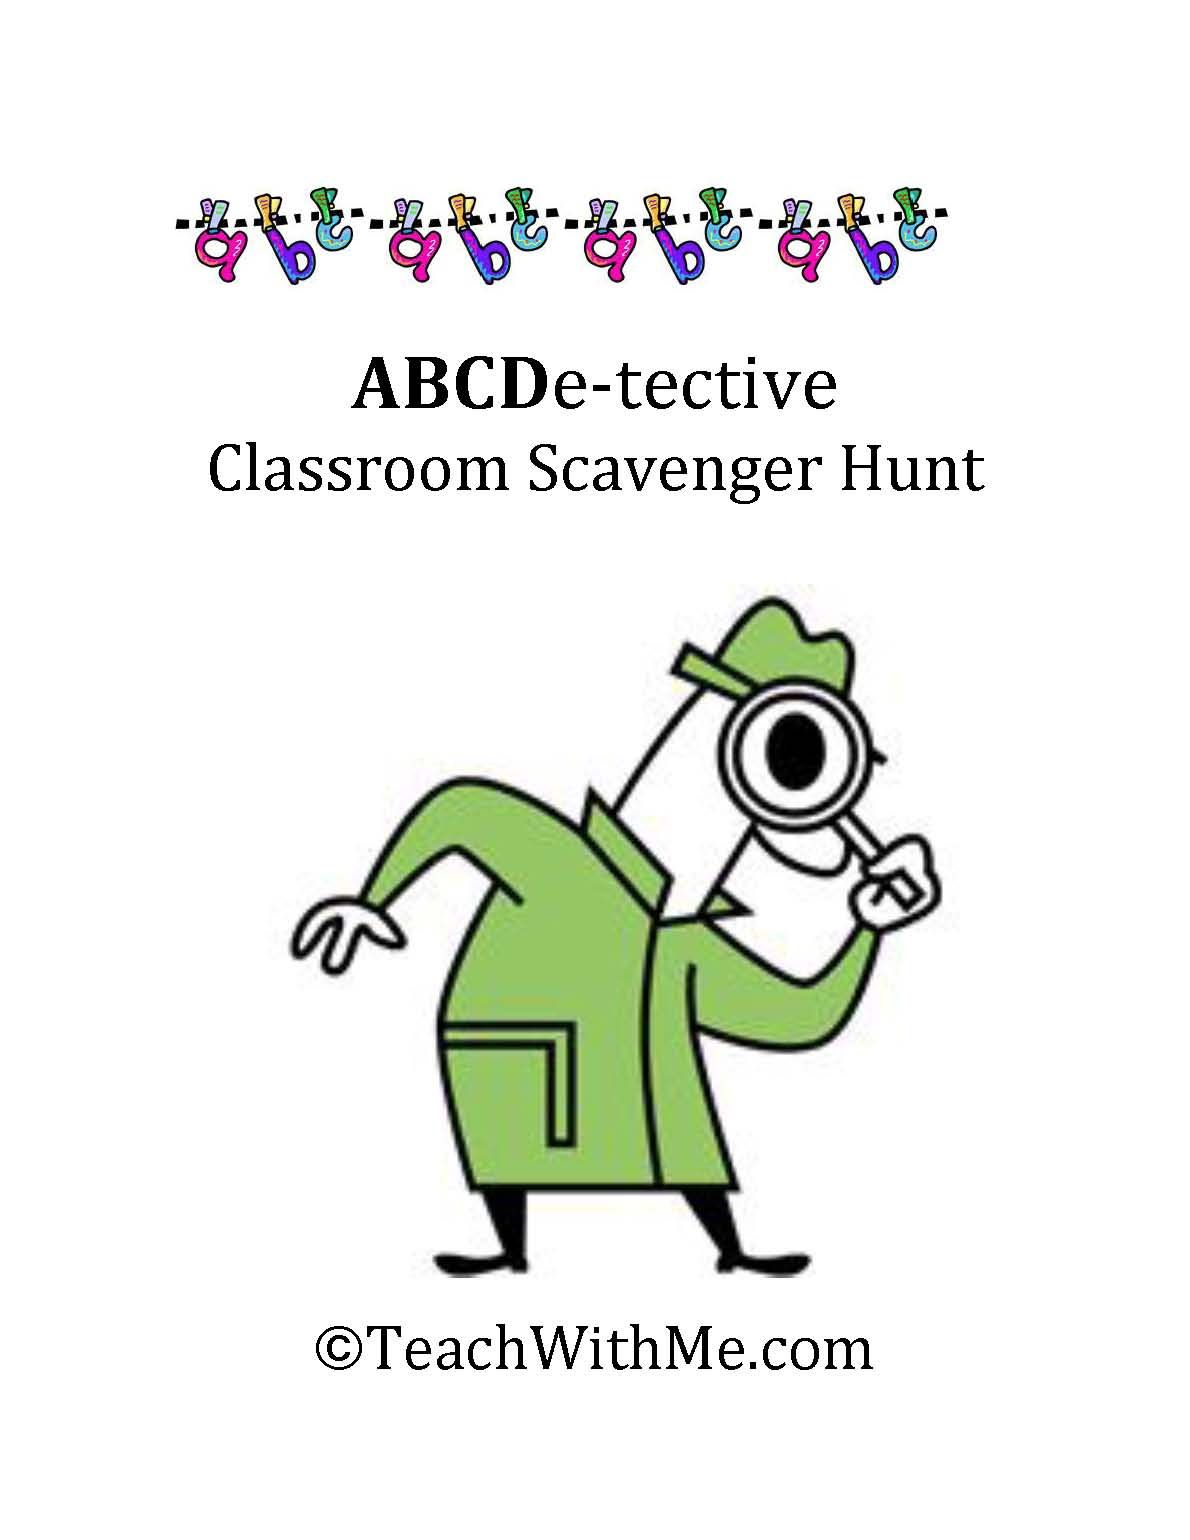 Abcdetective Classroom Scavenger Hunt